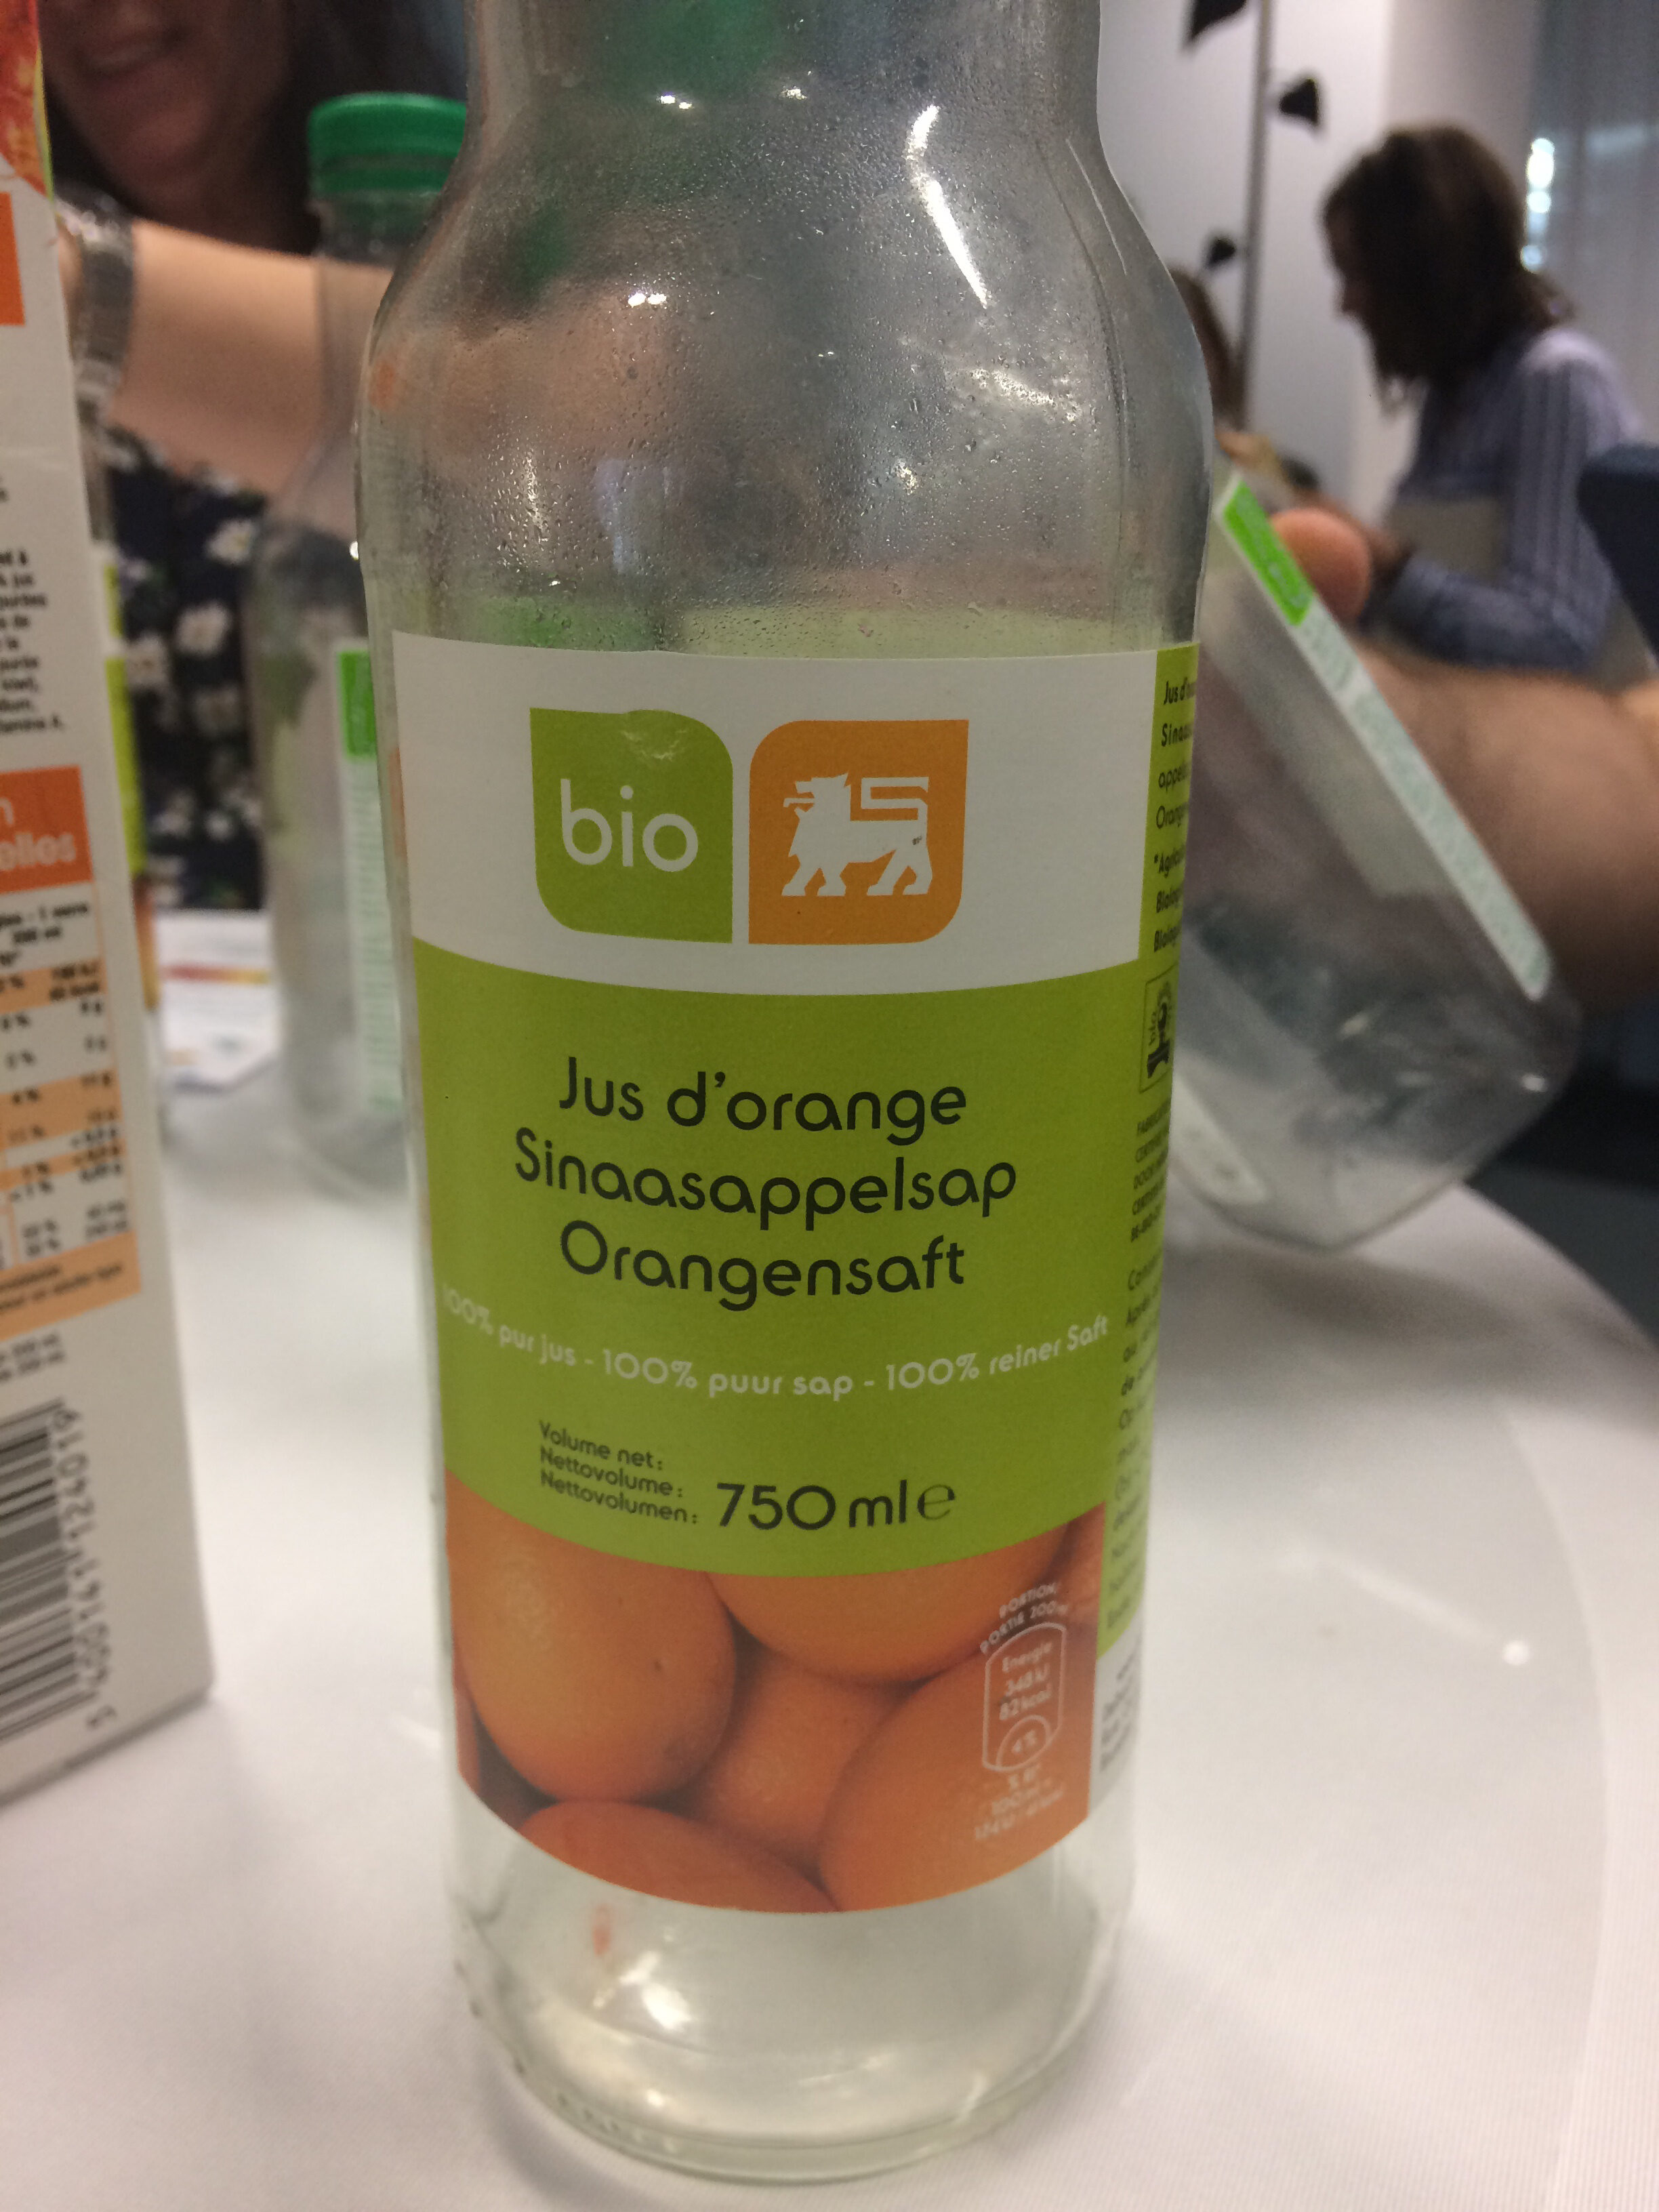 Jus d'orange bio delhaize - Product - fr